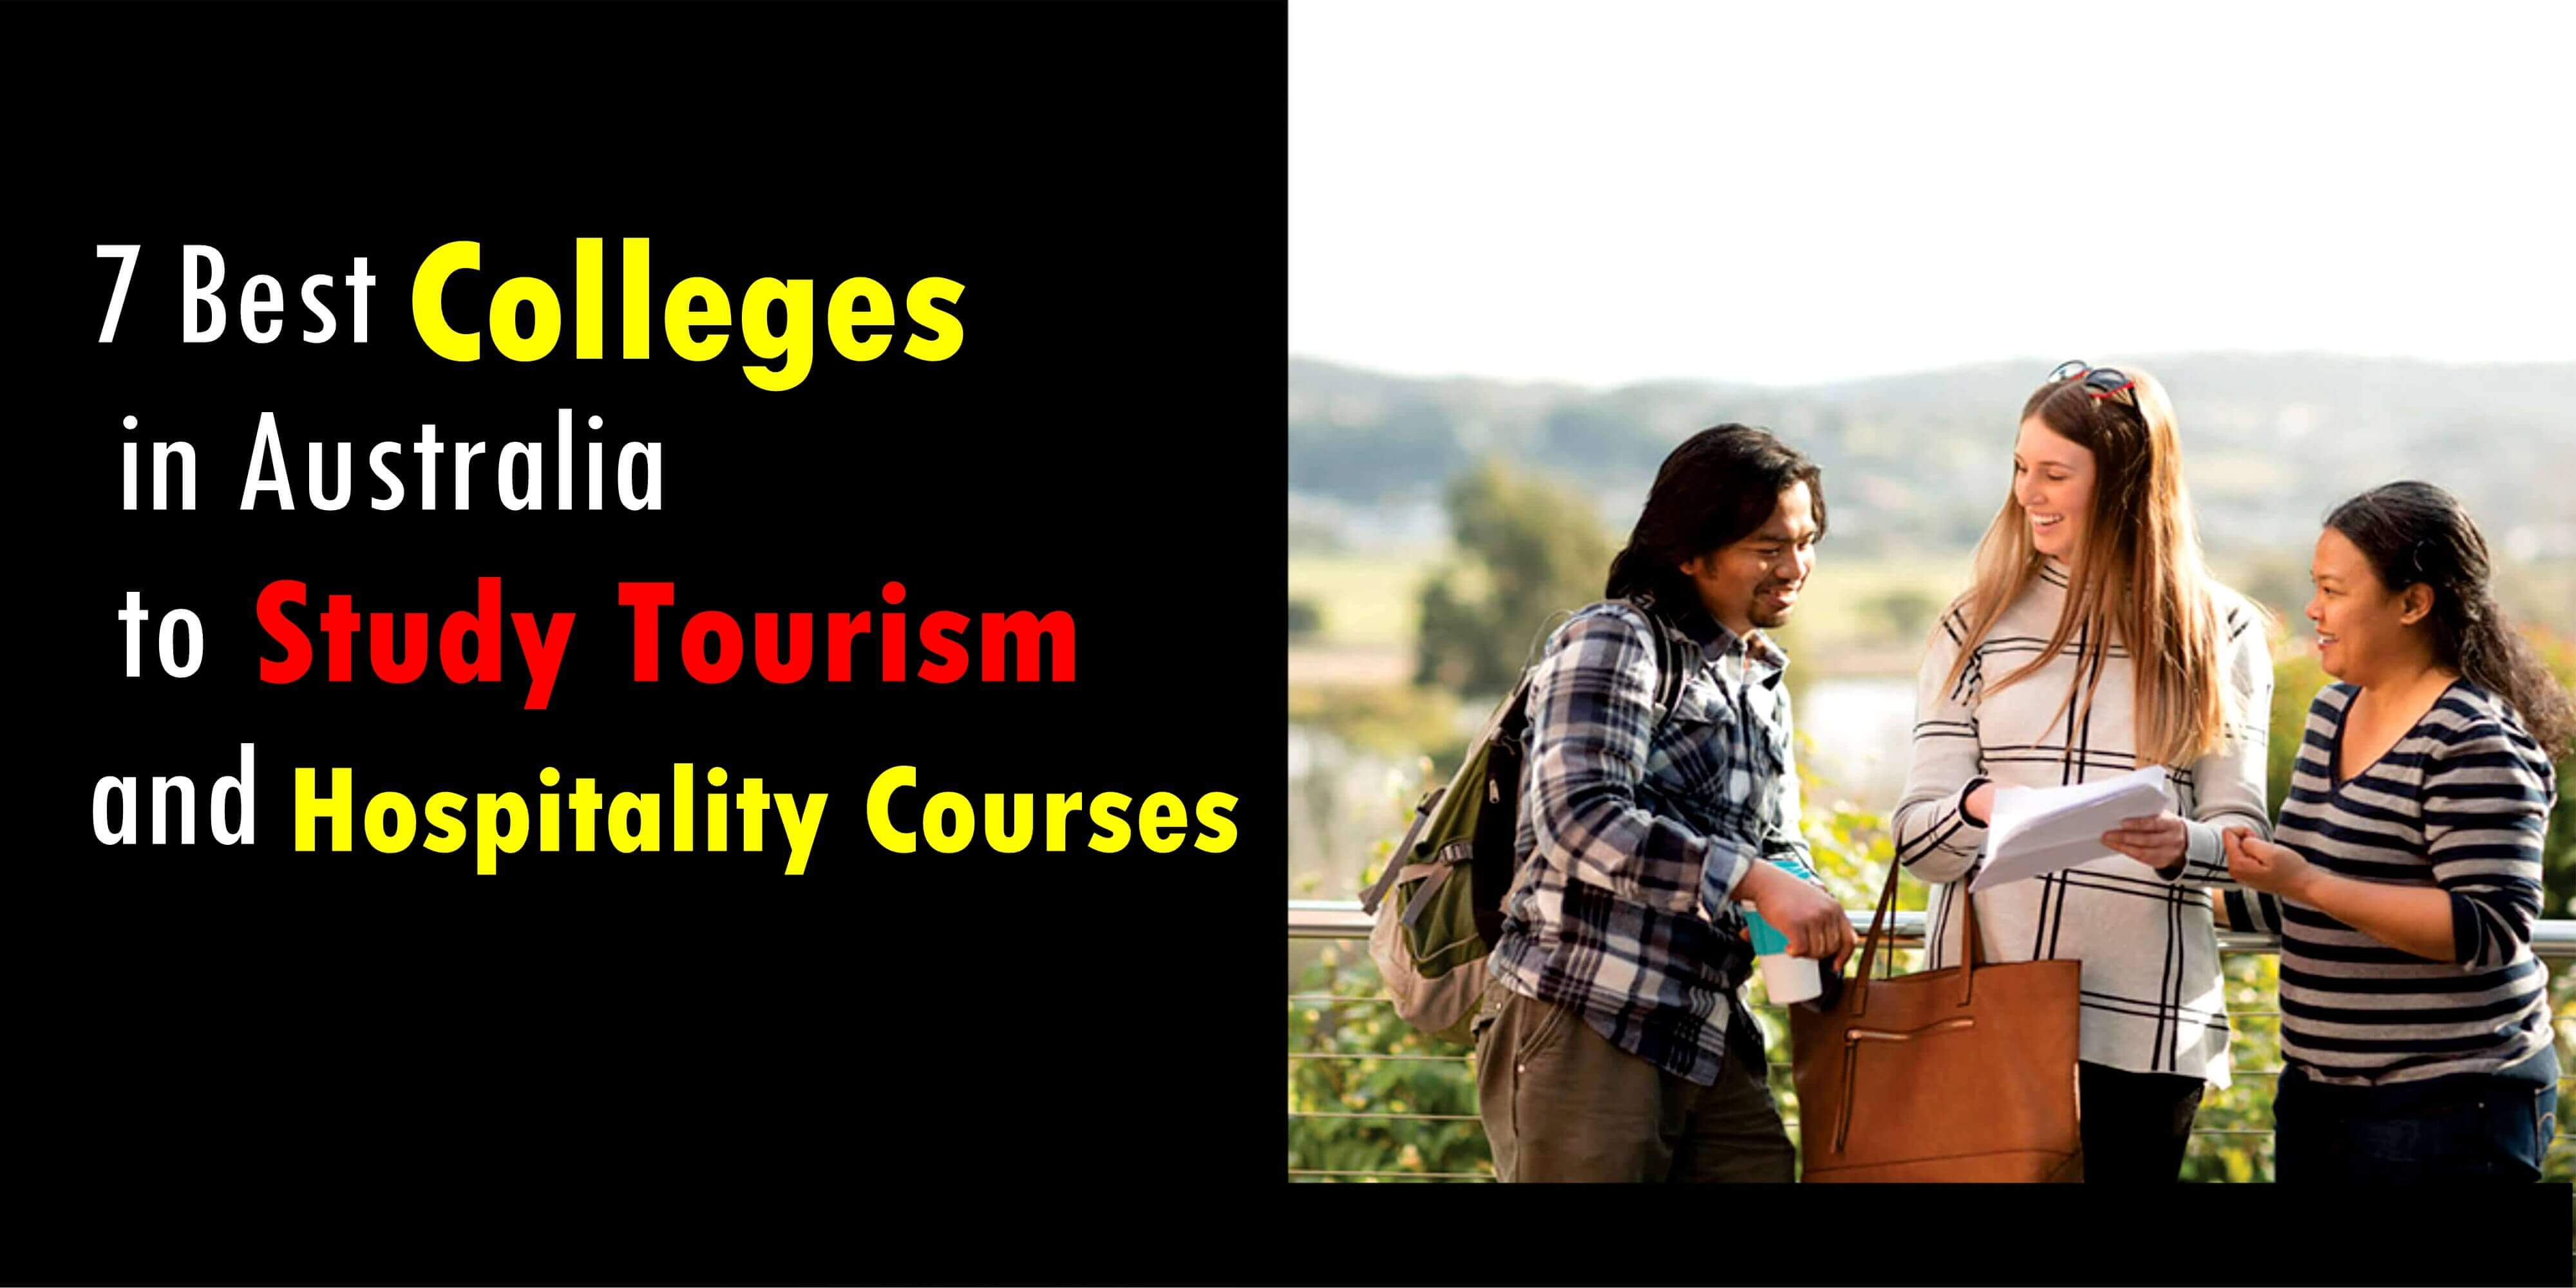 7 Best Colleges in Australia to Study Tourism and Hospitality Courses